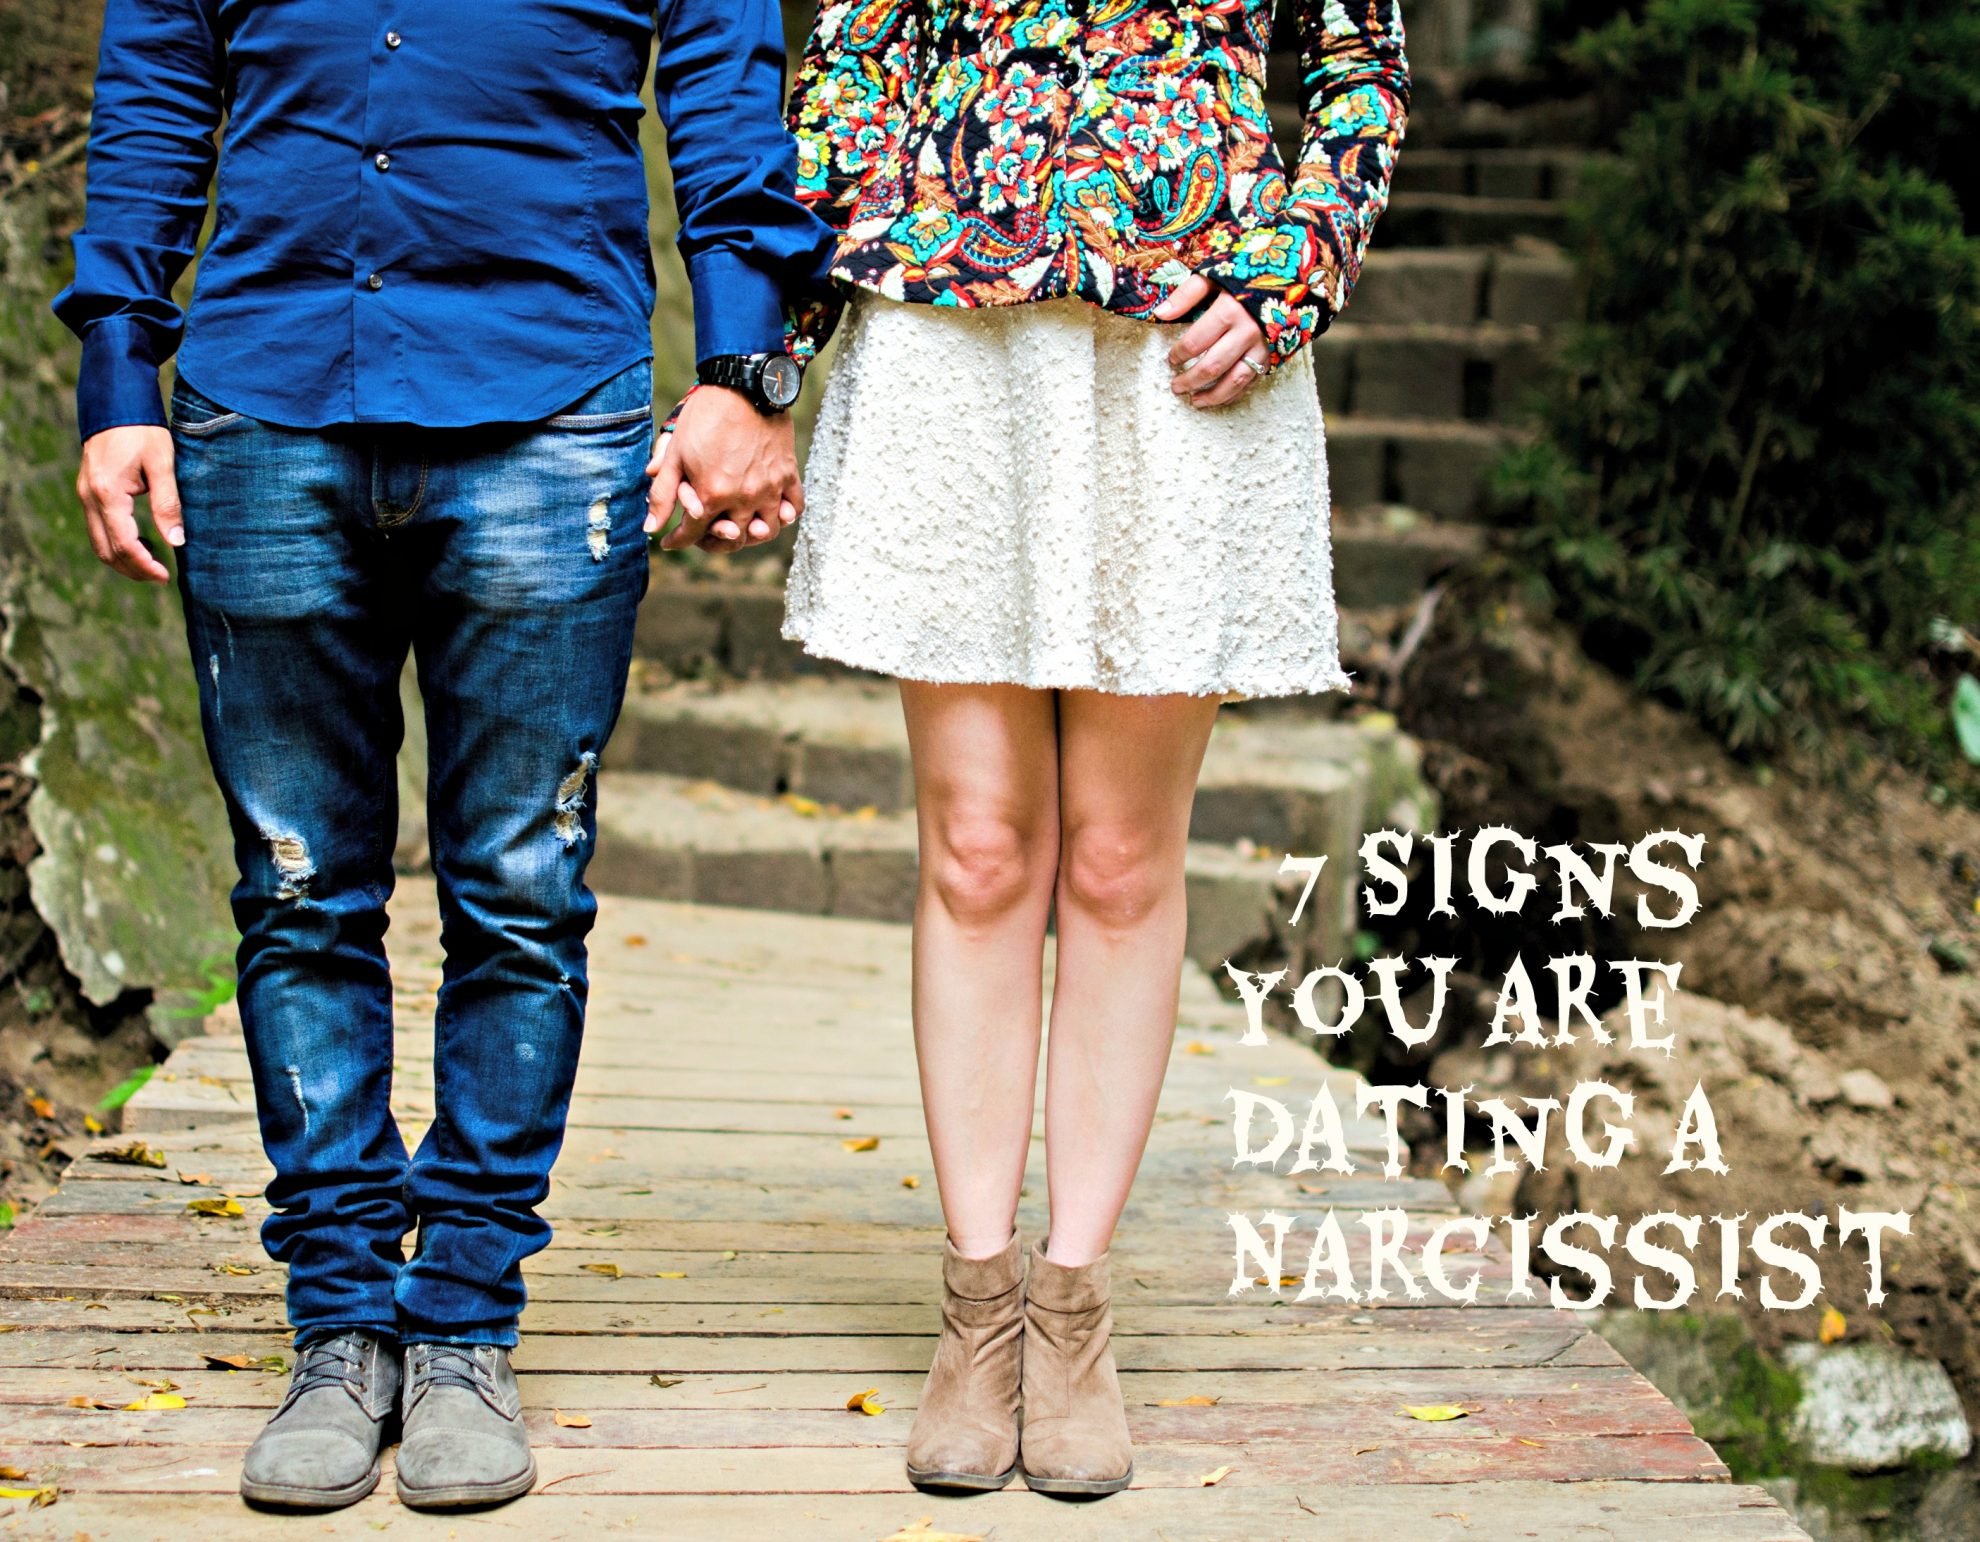 Narcissist Dating Sites